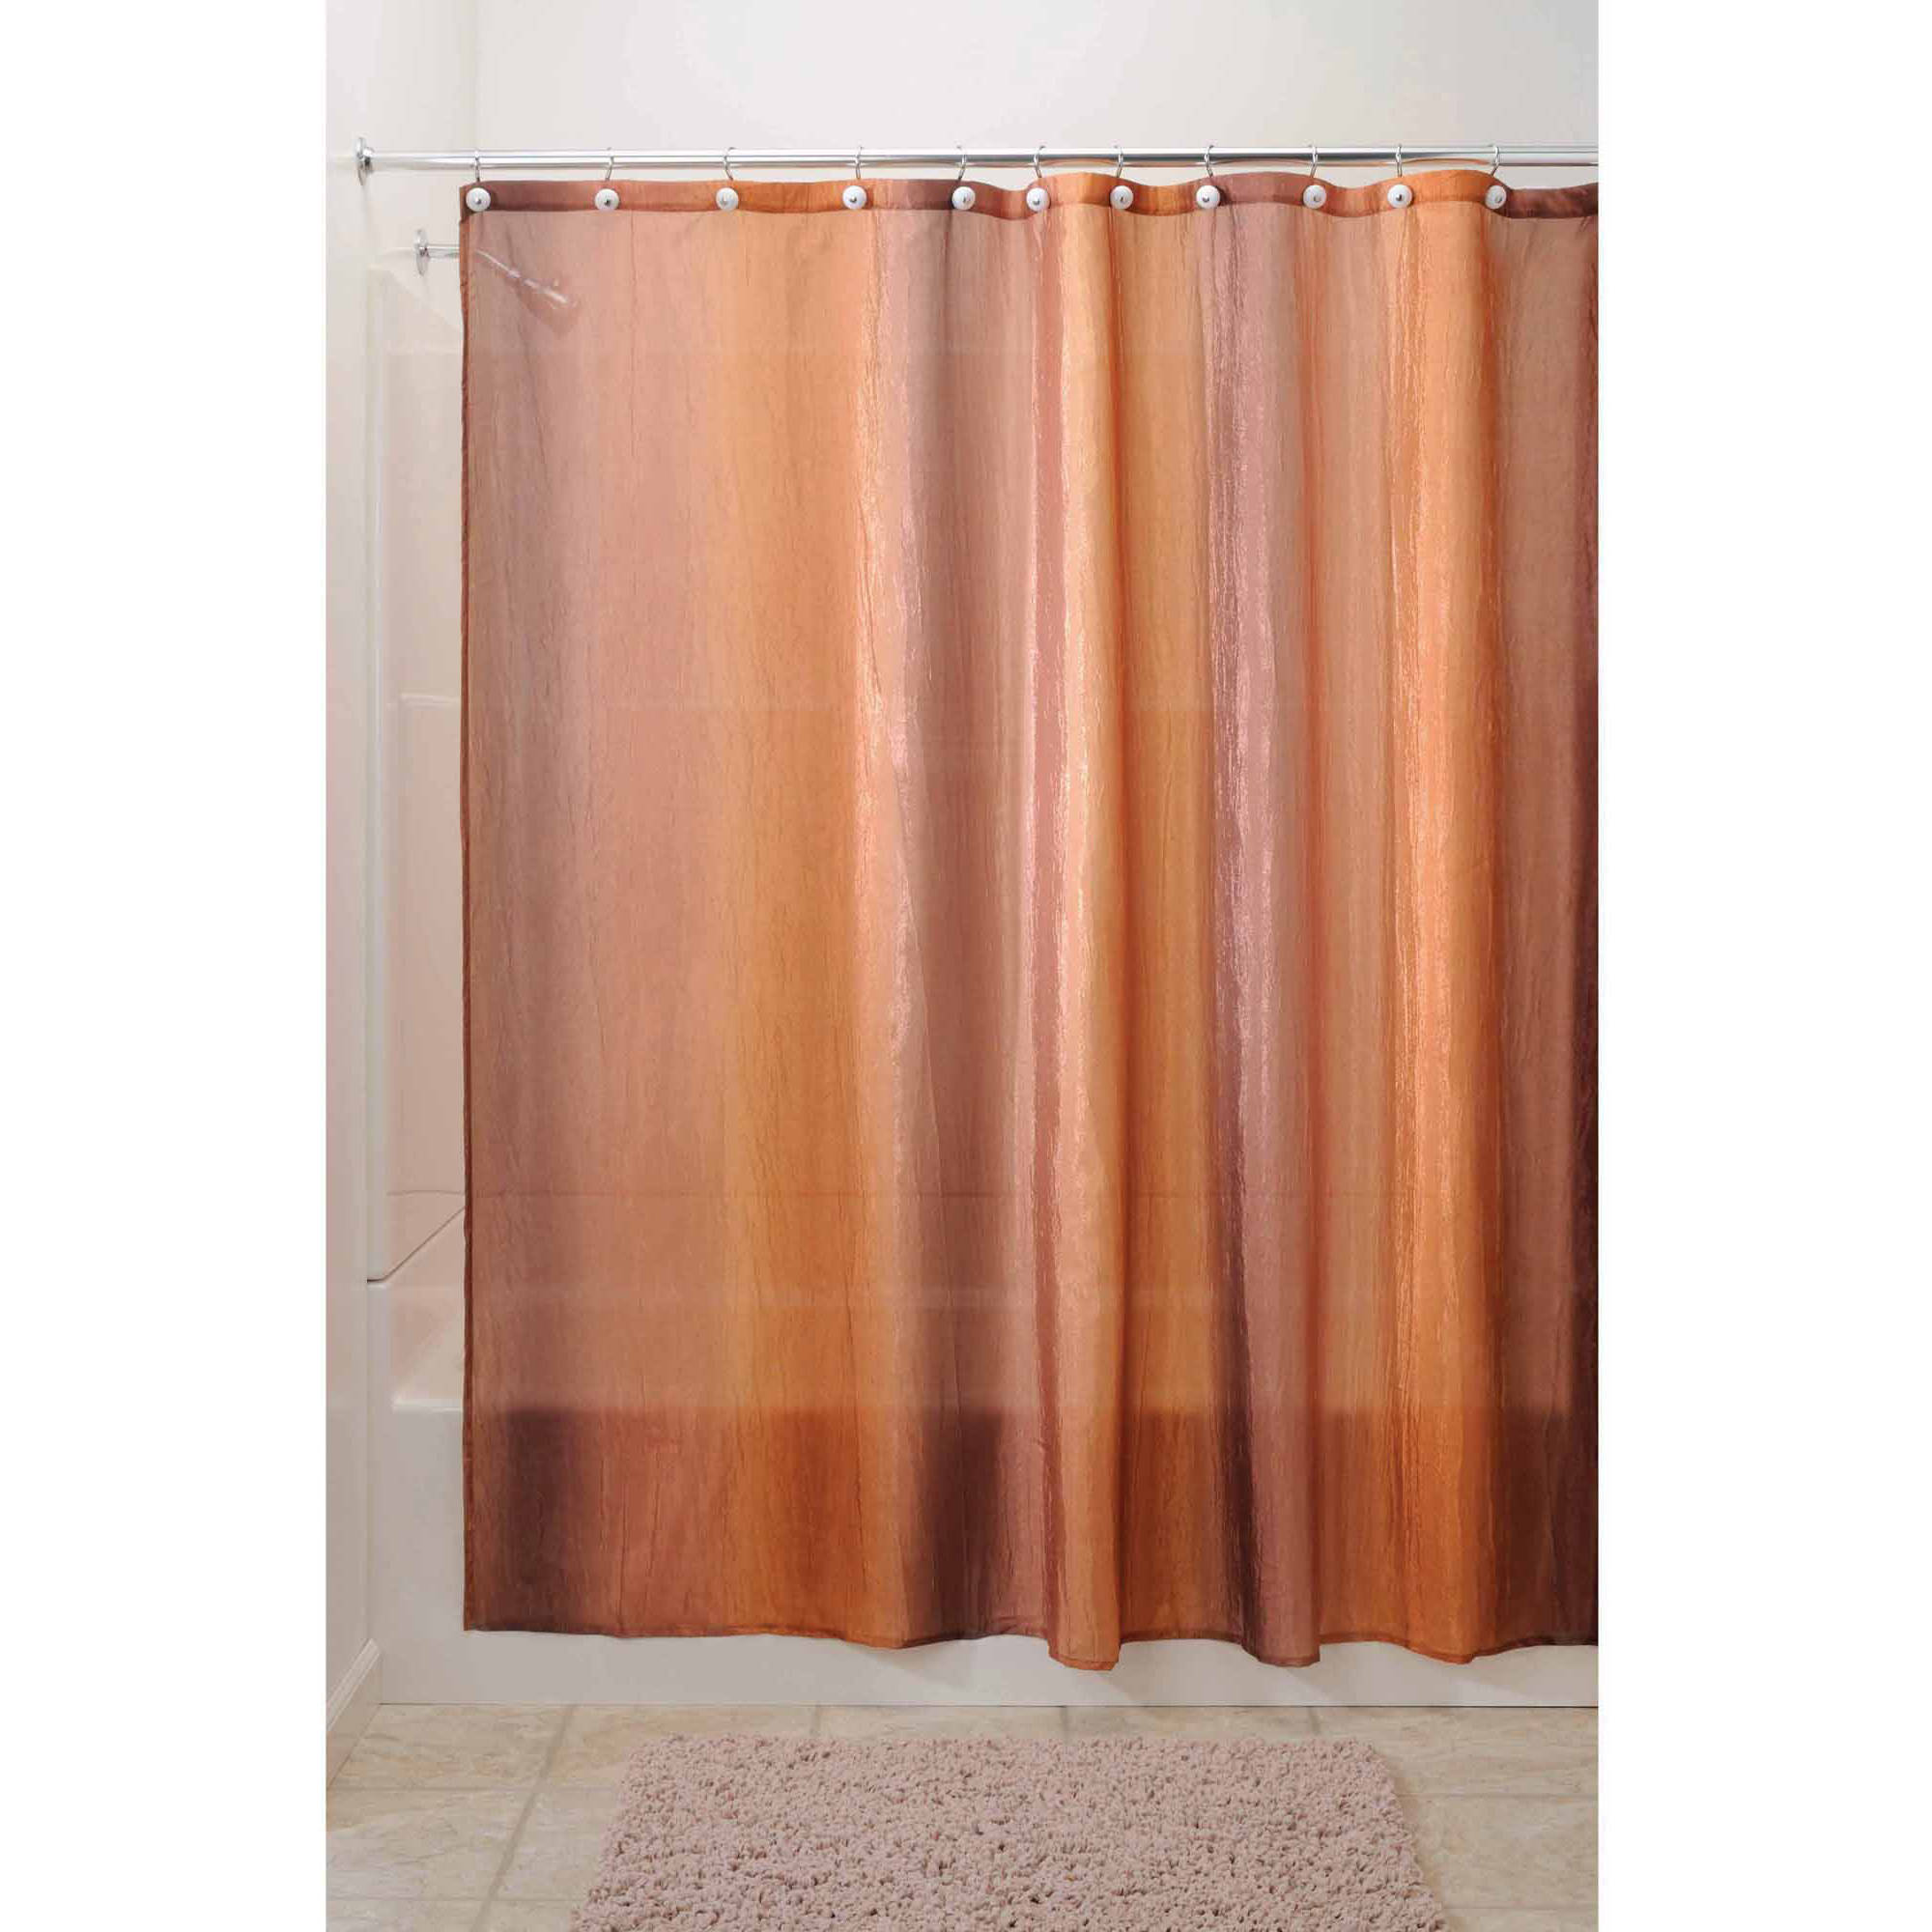 InterDesign Ombre Fabric Shower Curtain   Walmart.com